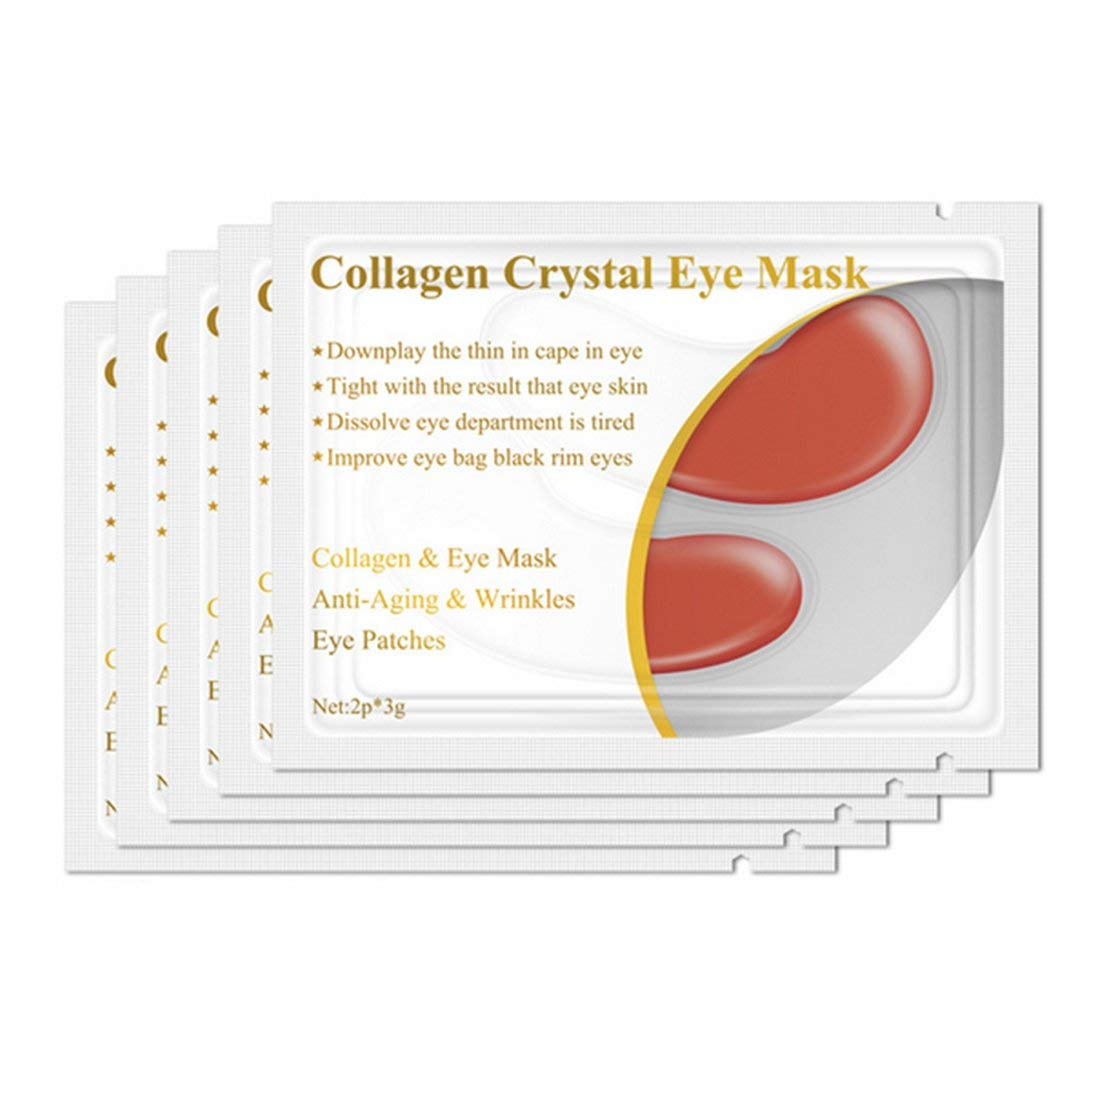 1pair Collagen Protein Eye Mask Eye Patches Removal Dark Circle Anti-Aging Anti-wrinkle Moisturizing Facial Firming Eye Care - Red Formulaone